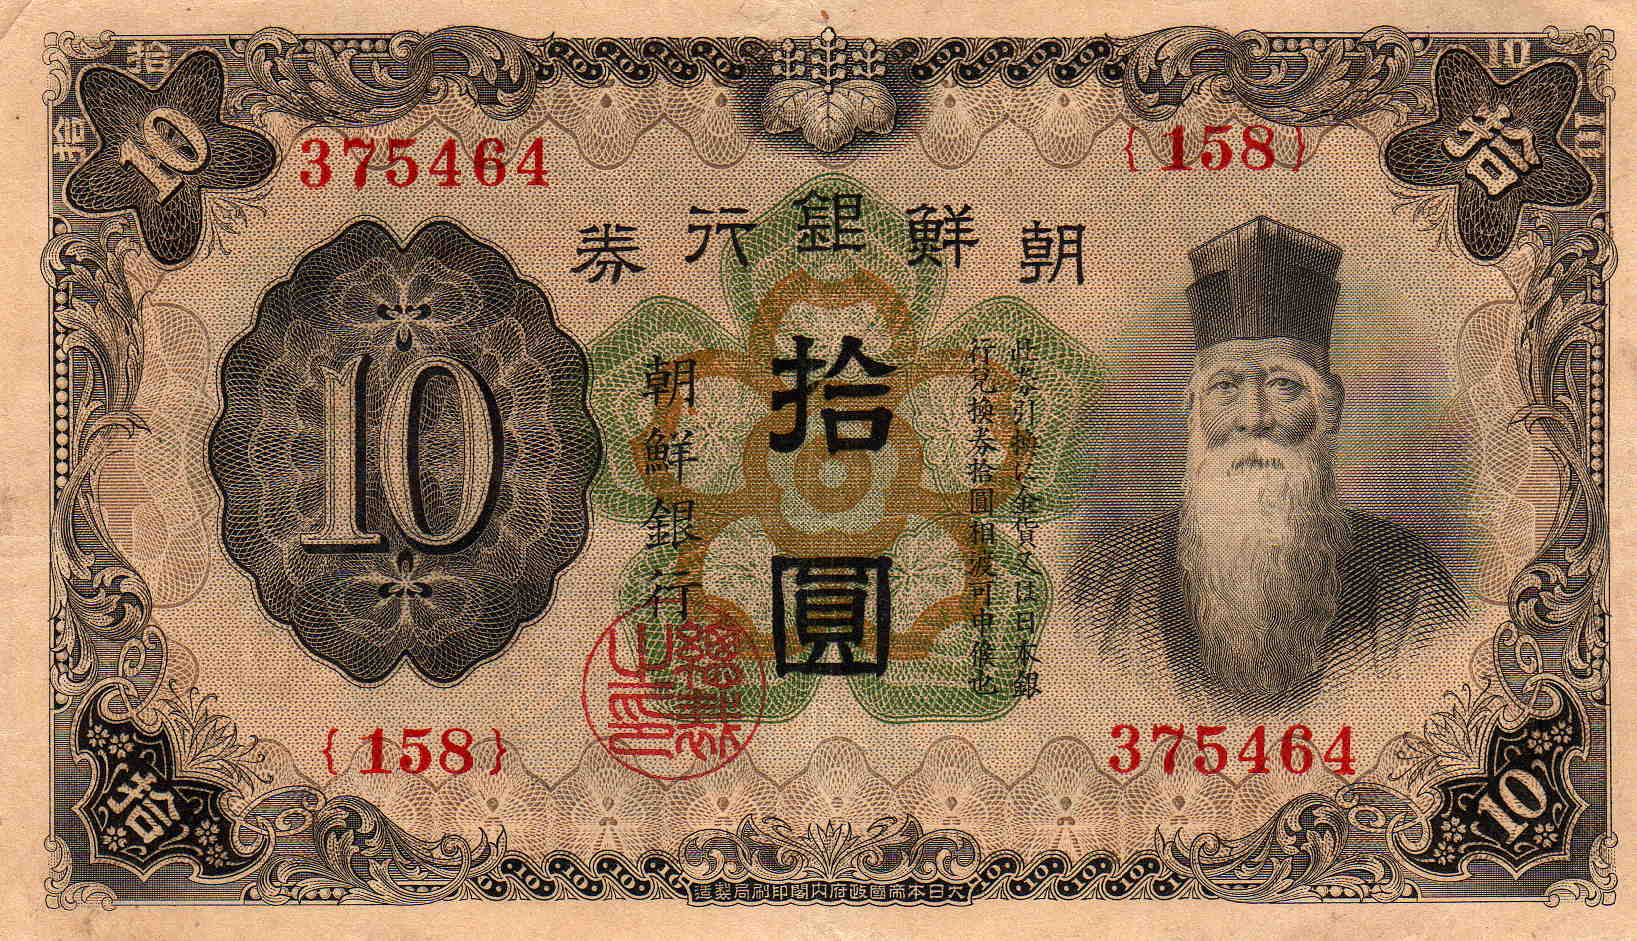 1950 10 Values Old Currency Bill